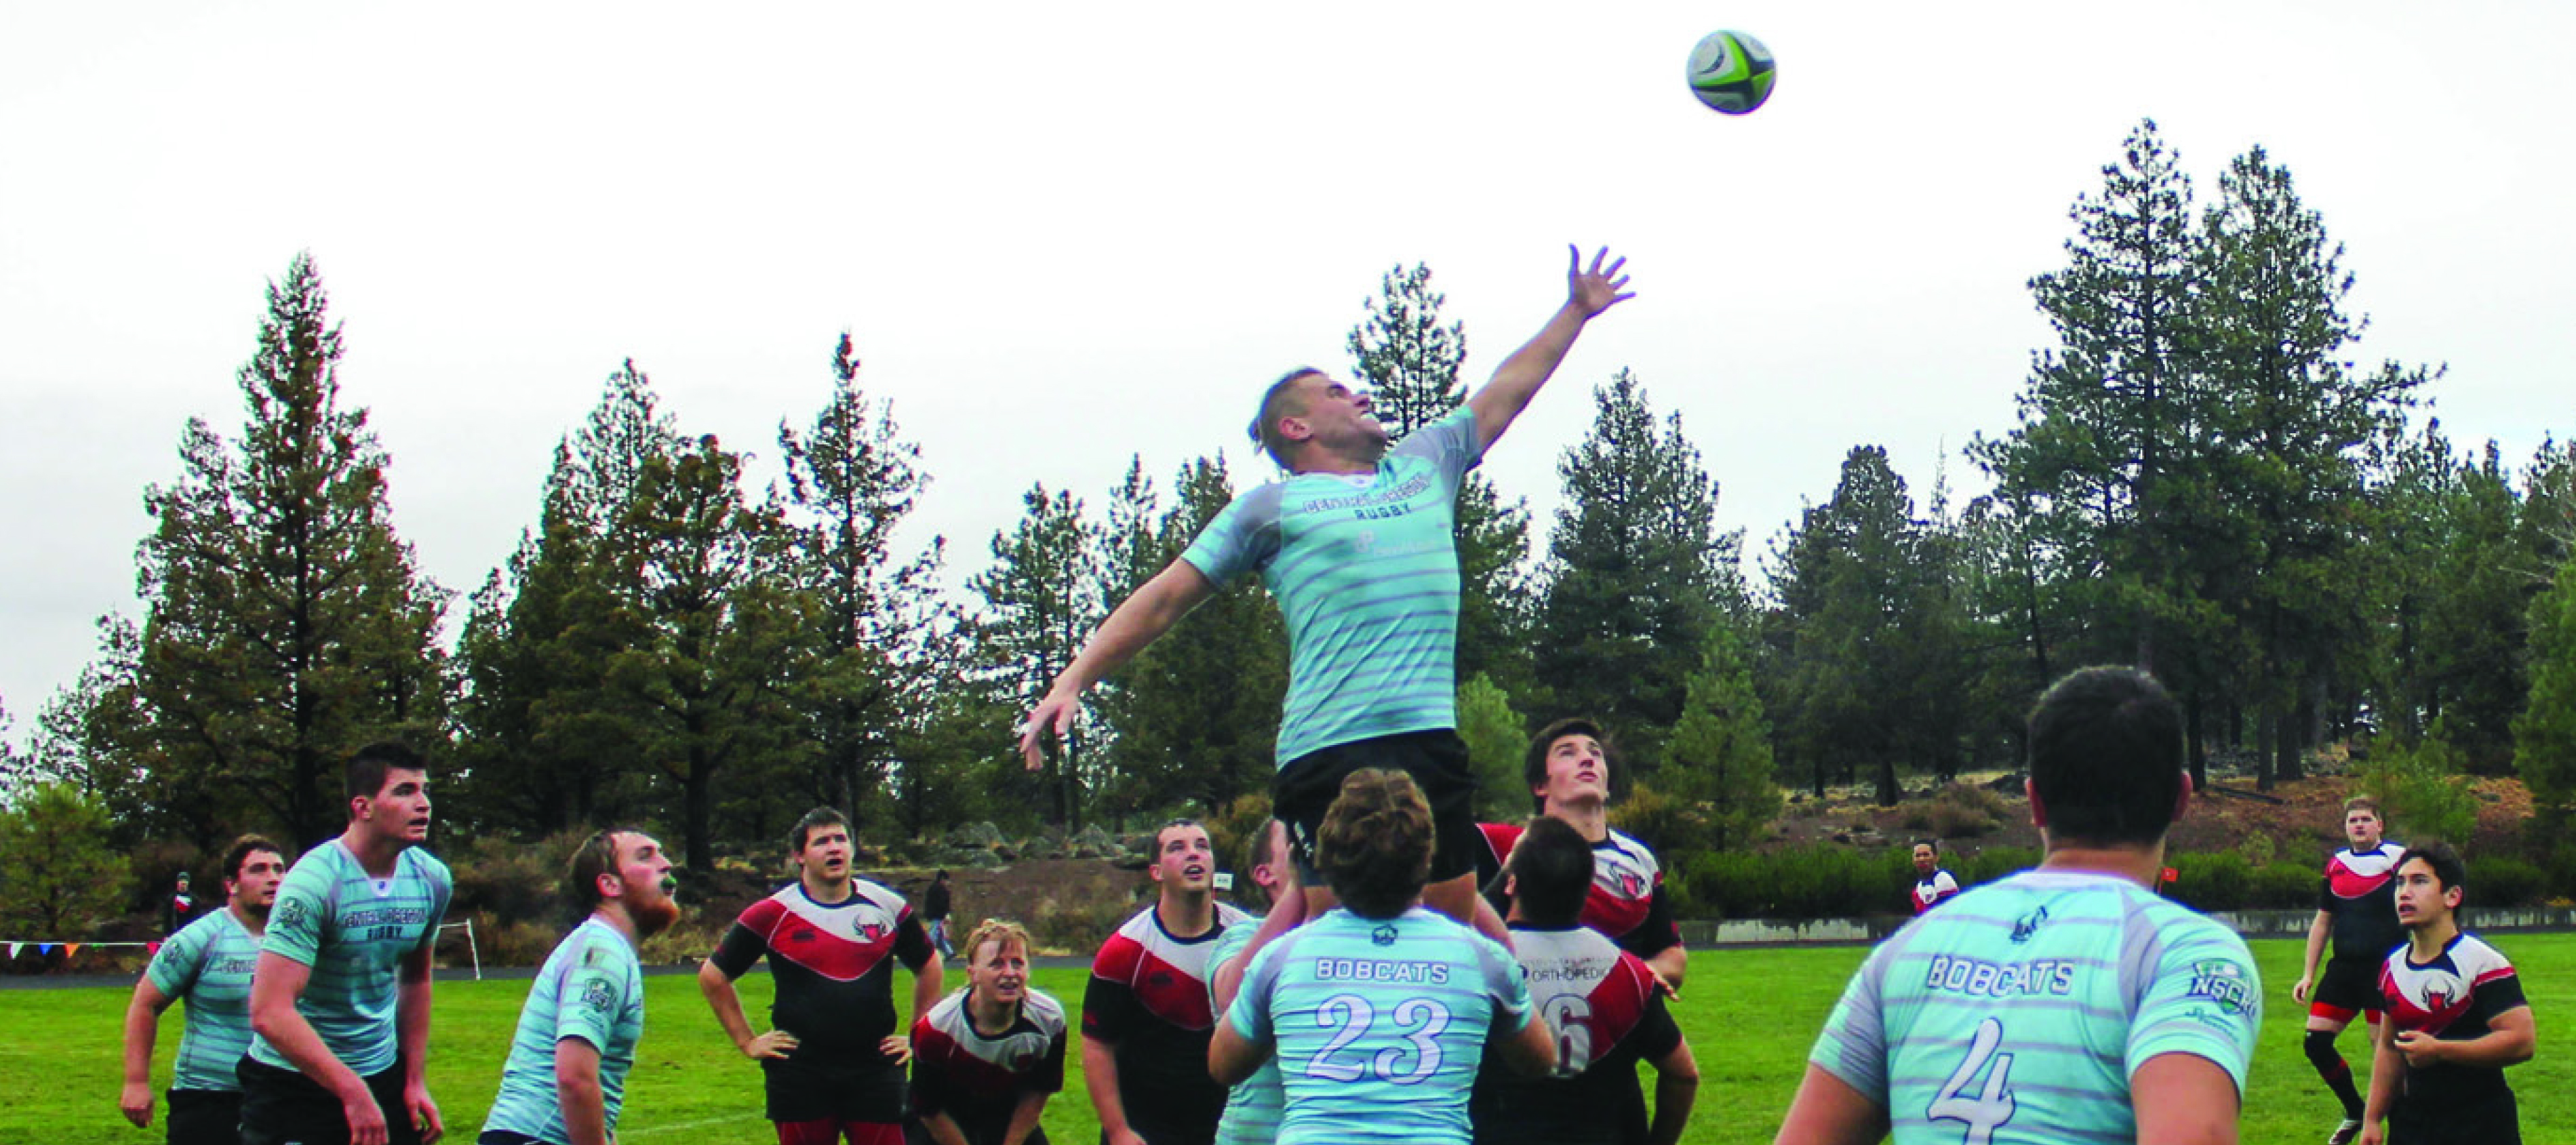 COCC Rugby Club vs. Southern Oregon Rugby Club, October 2016 (Photo By: Carl Swanson)